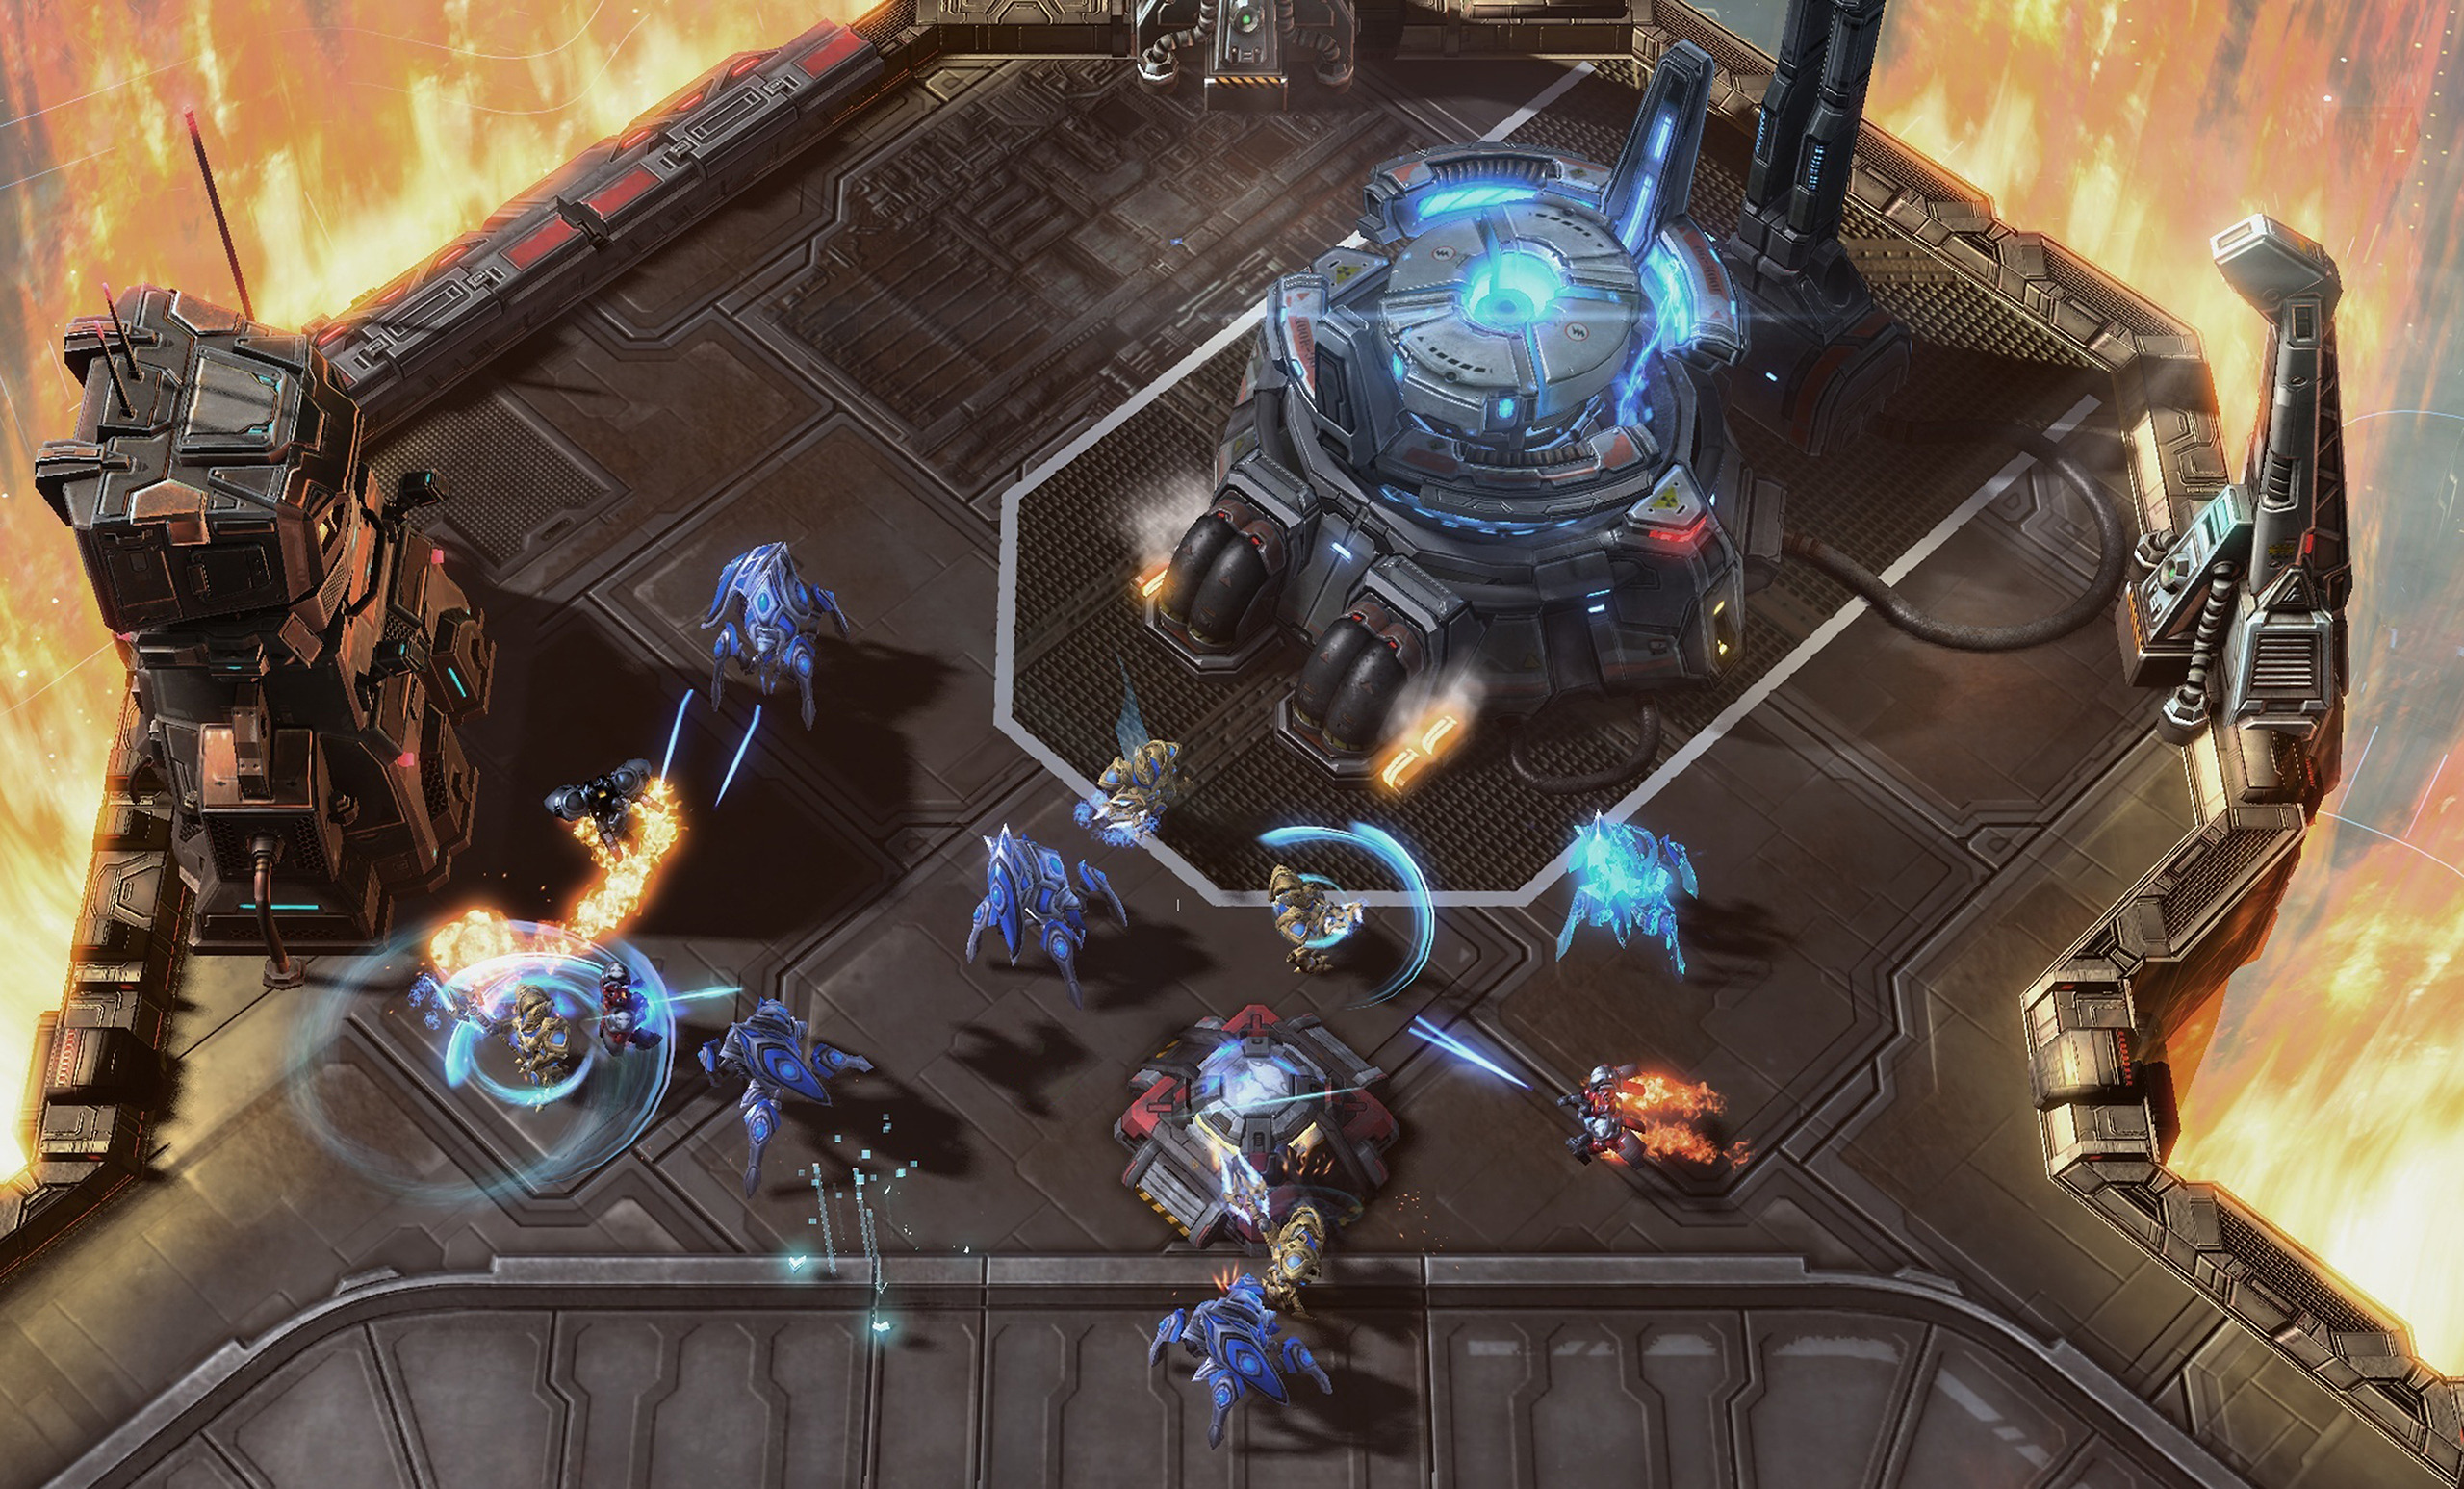 starcraft-ii-legacy-of-the-void-blizzcon-2014-korhal-03-100529704-orig